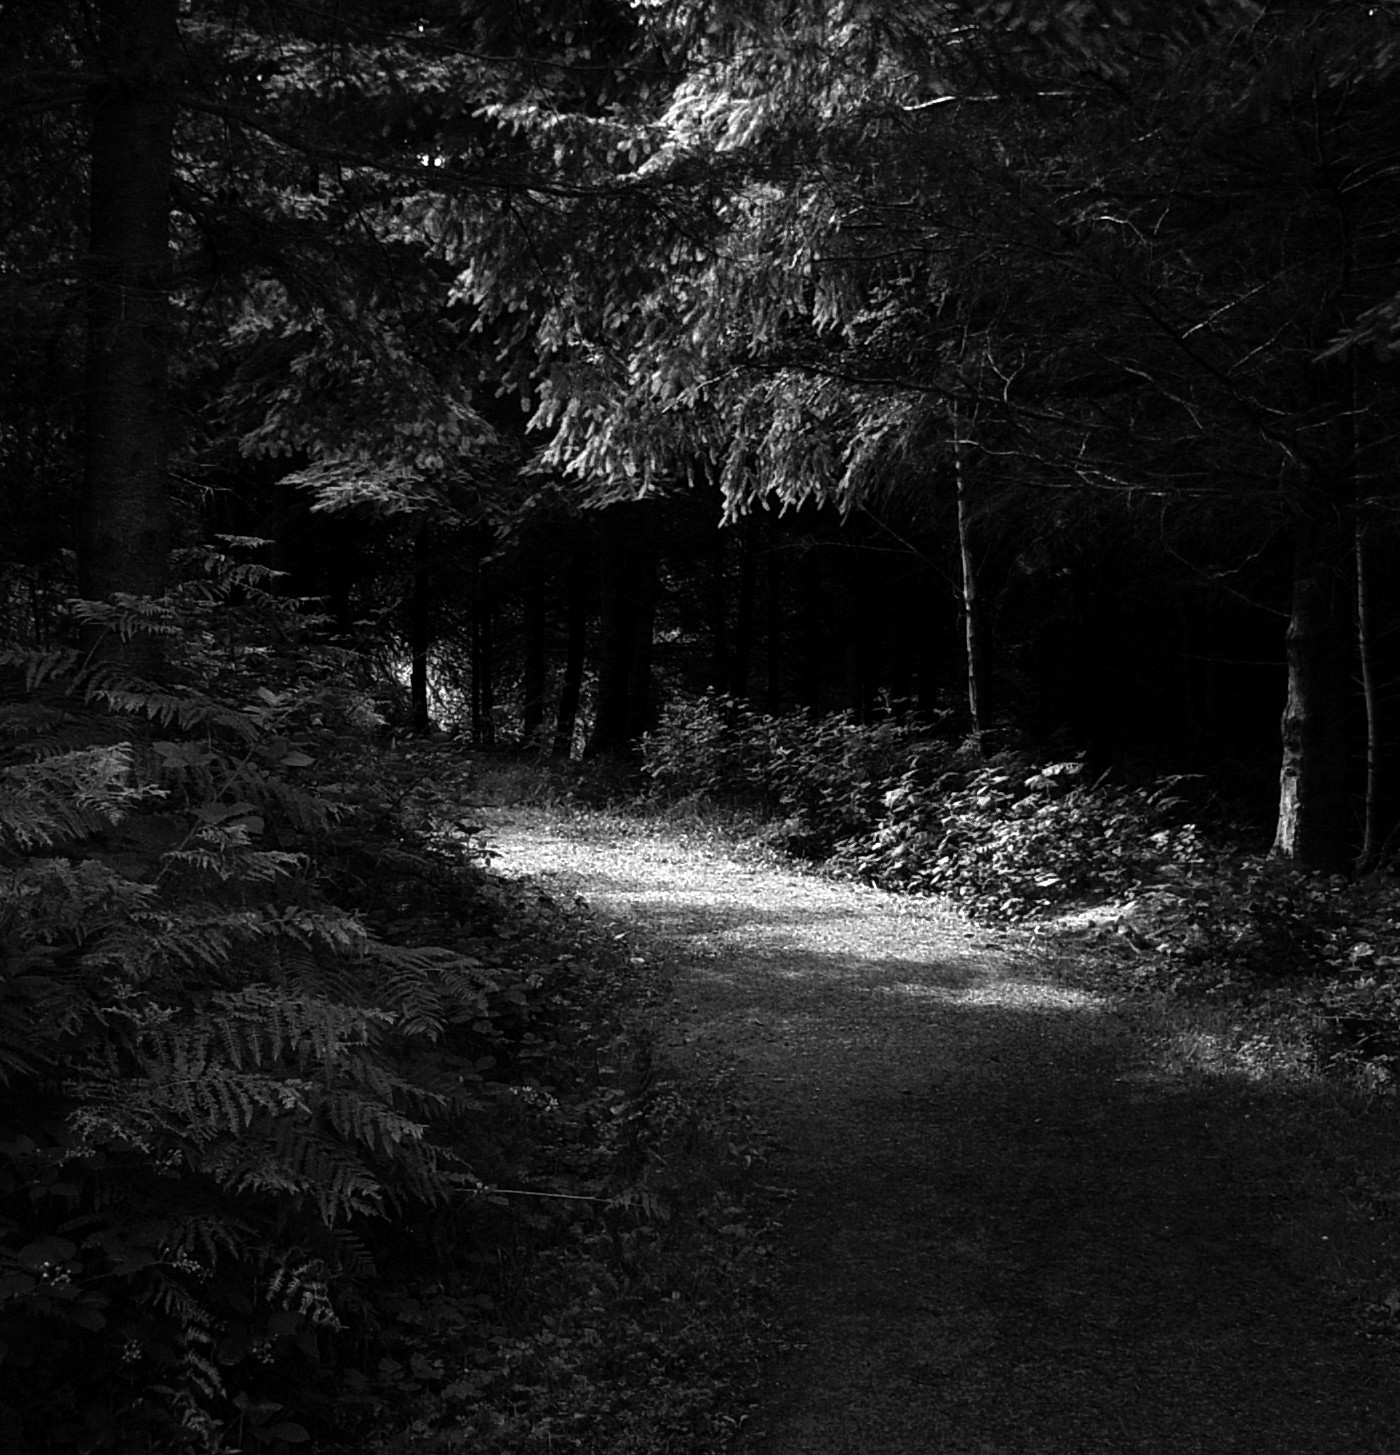 Step Into The Light And Let It Go: Step Into The Light By Forestina-Fotos On DeviantArt